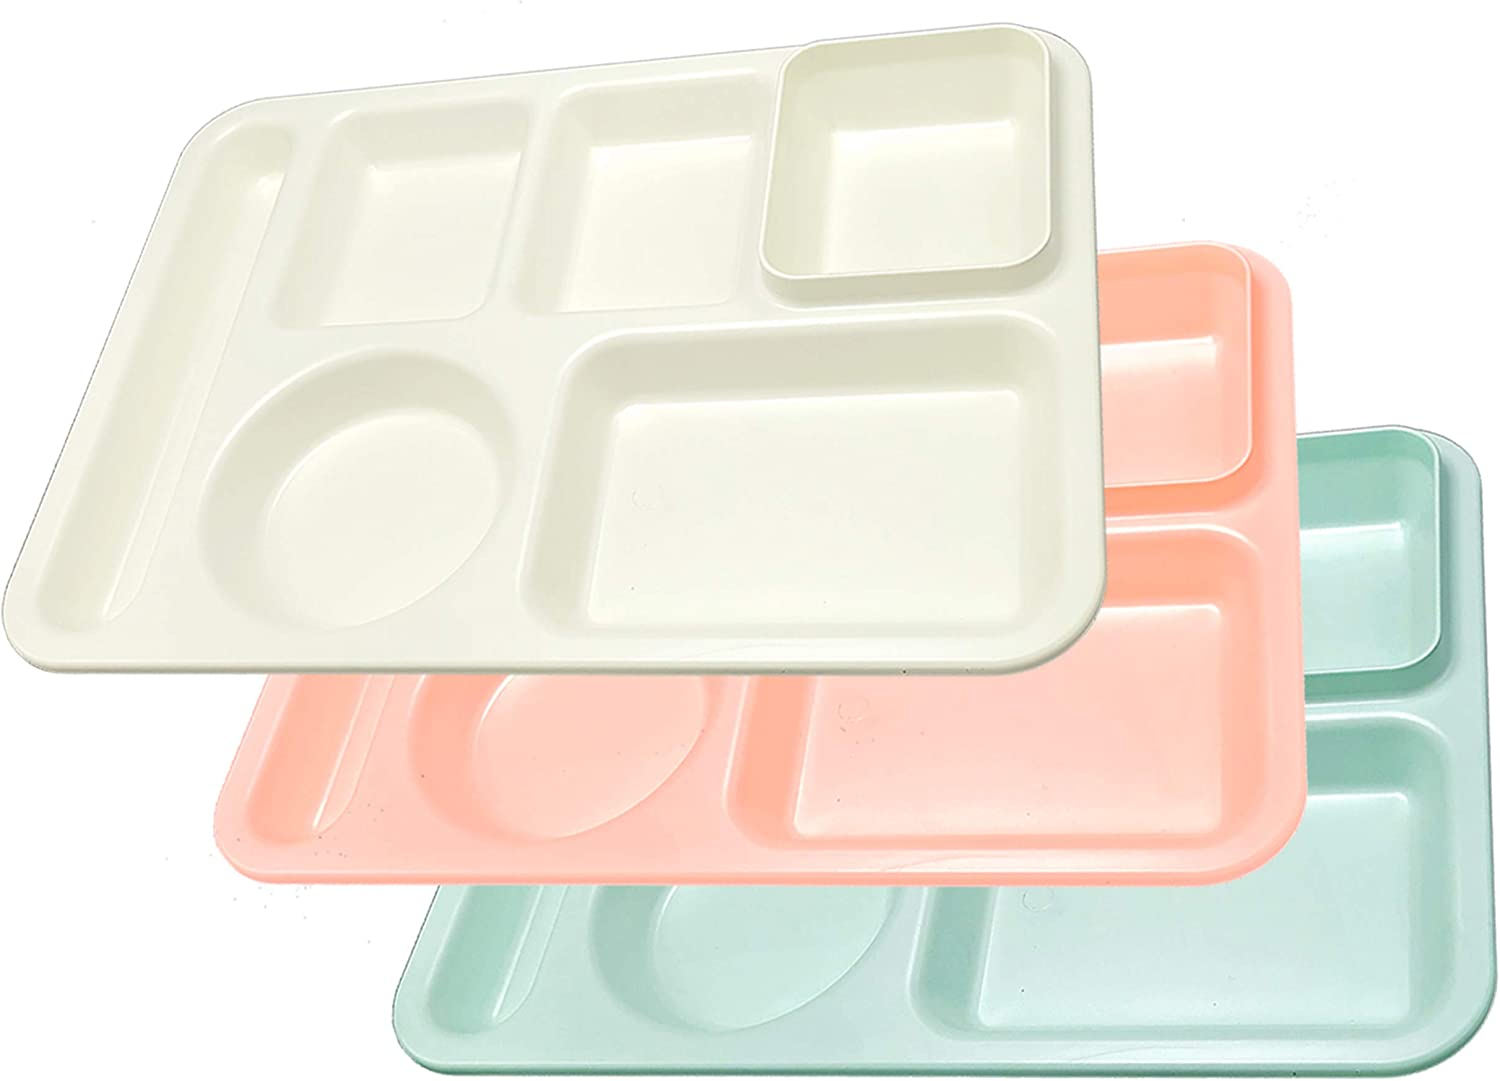 Happy Starla - Made In USA - Classic Plastic Divided Plates for Adults, School Lunch Trays for Kids,Toddlers, Fast Food Trays Cafeteria Trays with Compartments 14x10 (Mix 3 - Mint/Ivory/Pink, 3)